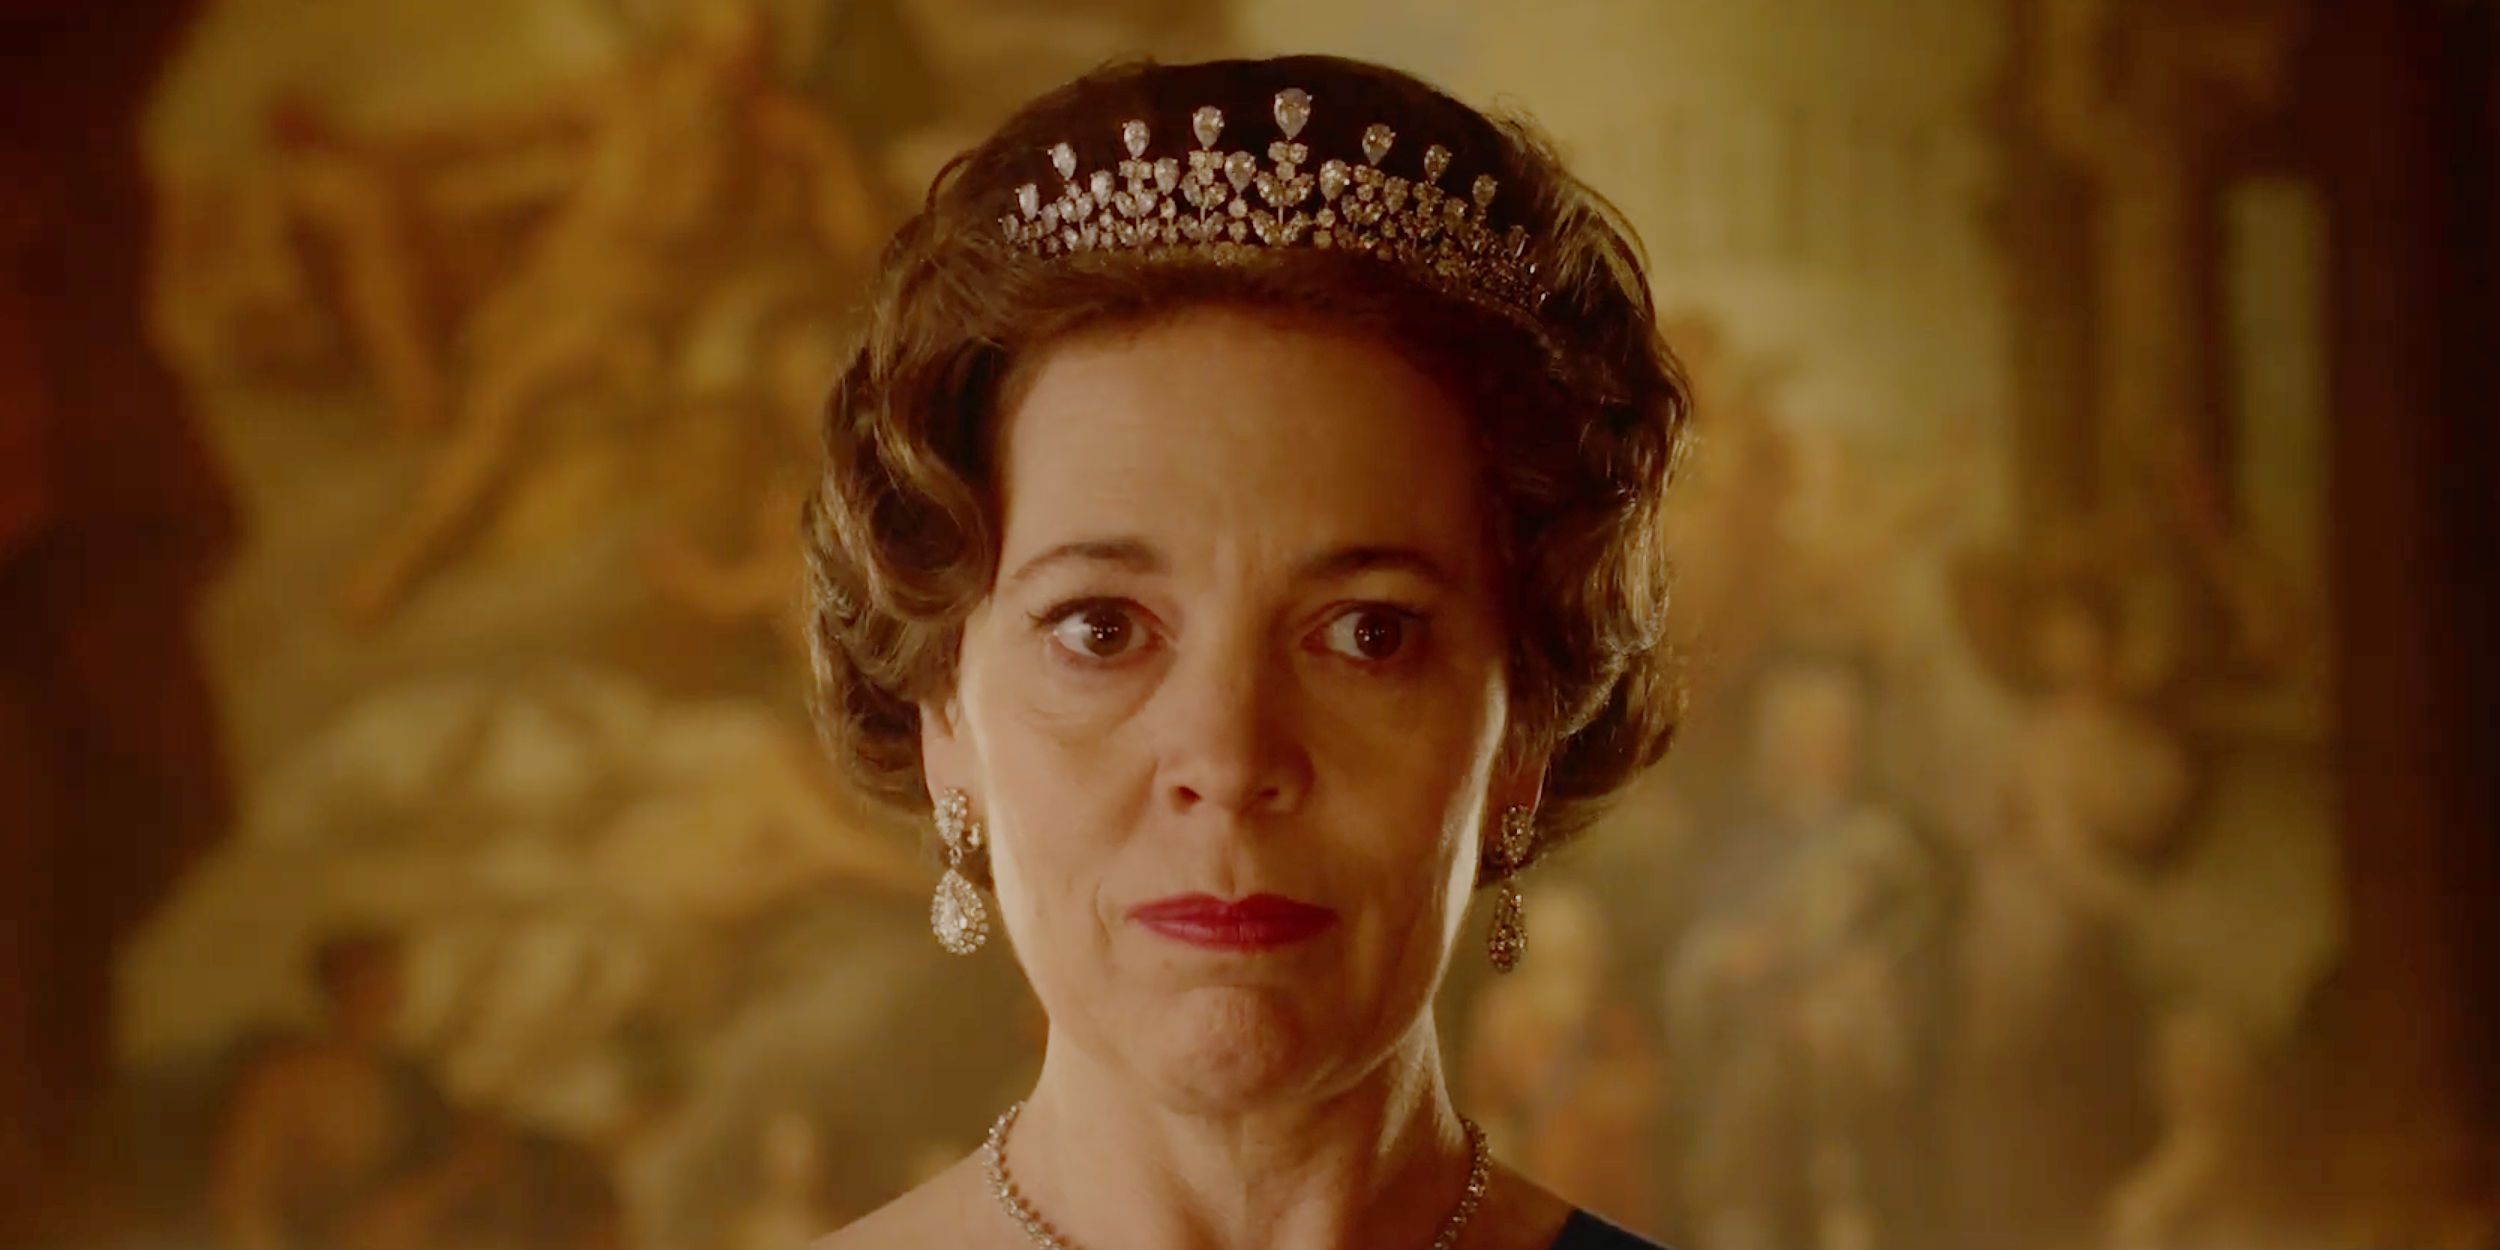 The Crown Season 3 Trailer Teases Elizabeth vs. Charles